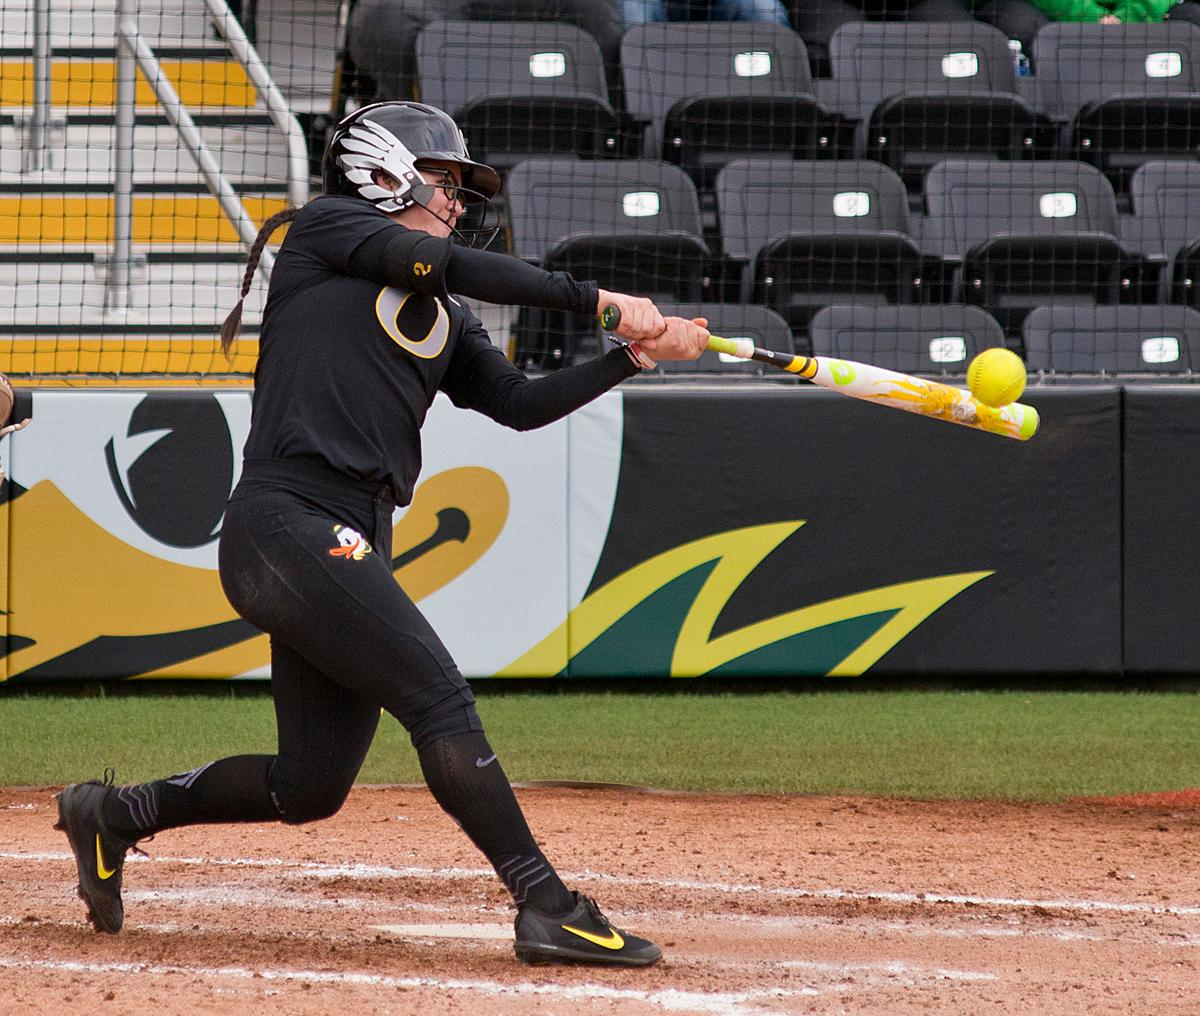 Oregon Ducks Danica Mercado (#2) gets a solid hit against the California Golden Bears. The Ducks defeated the Golden Bears 2-1 in the second game of a three-game series. Photo by Dan Morrison, Oregon News Lab